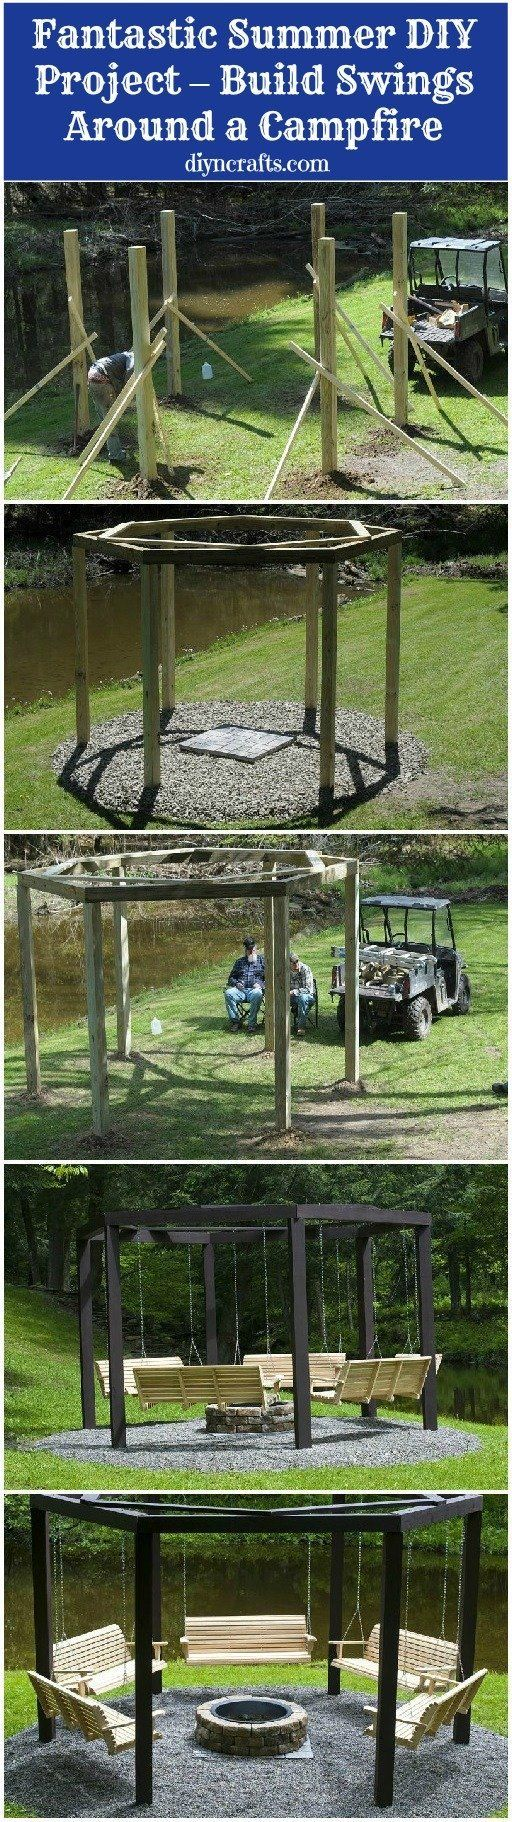 way cool!! Fantastic Summer DIY Project – Build Swings Around a Campfire Imagine relaxing here on a cool summer evening with your friends. It's not cheap to diy this but it has clever instructions and you'll own a very unique relaxing spot.